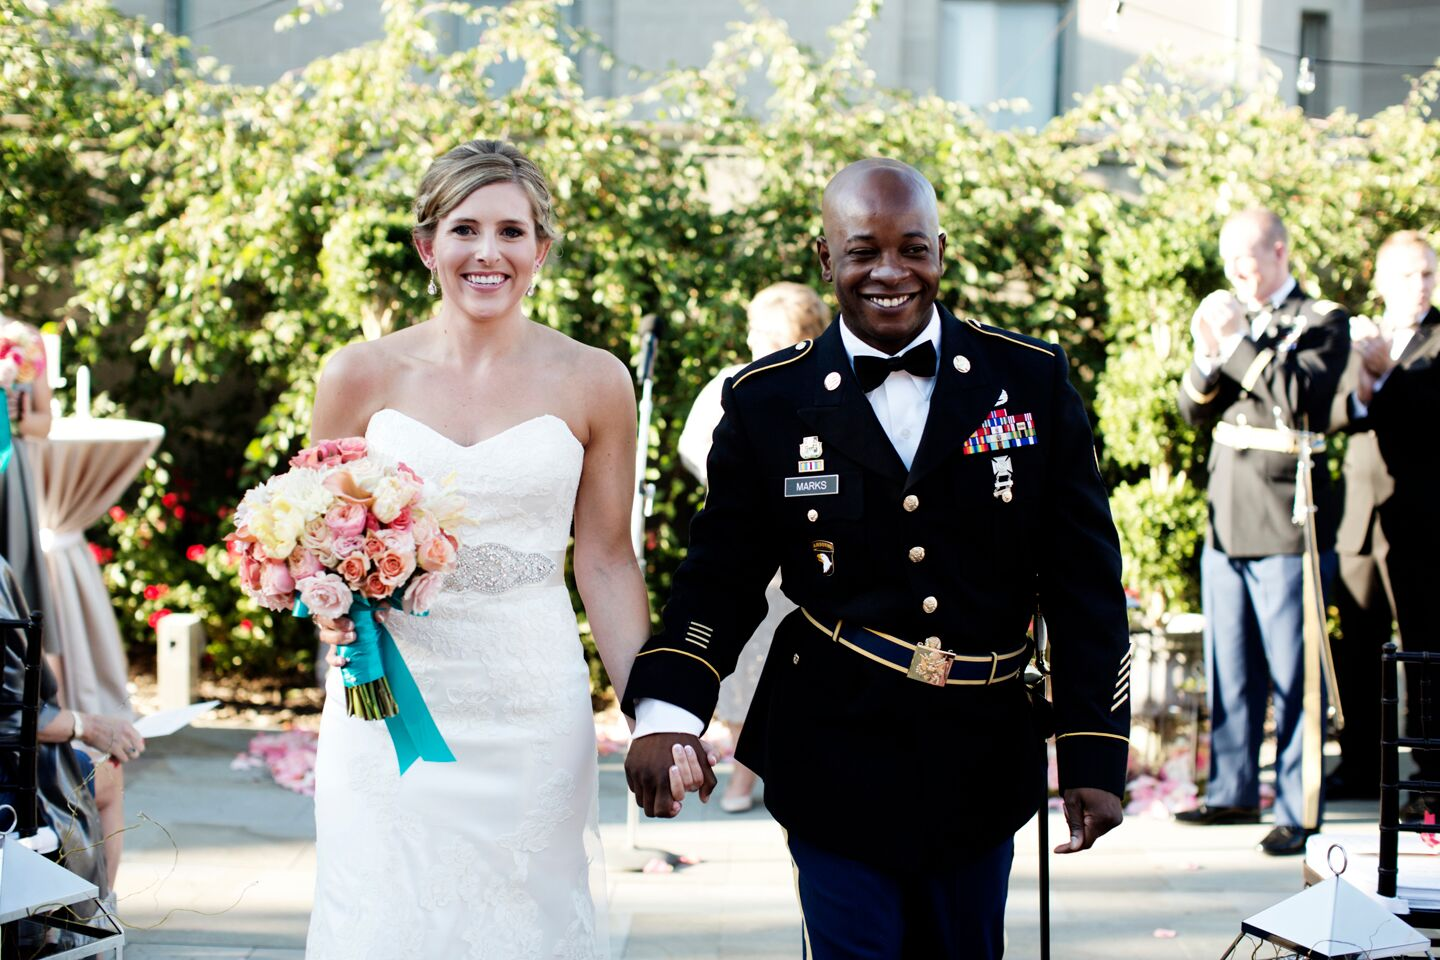 Wedding Gifts For Military Couples: U.S. Army Groom In Military Formal Blue Uniform